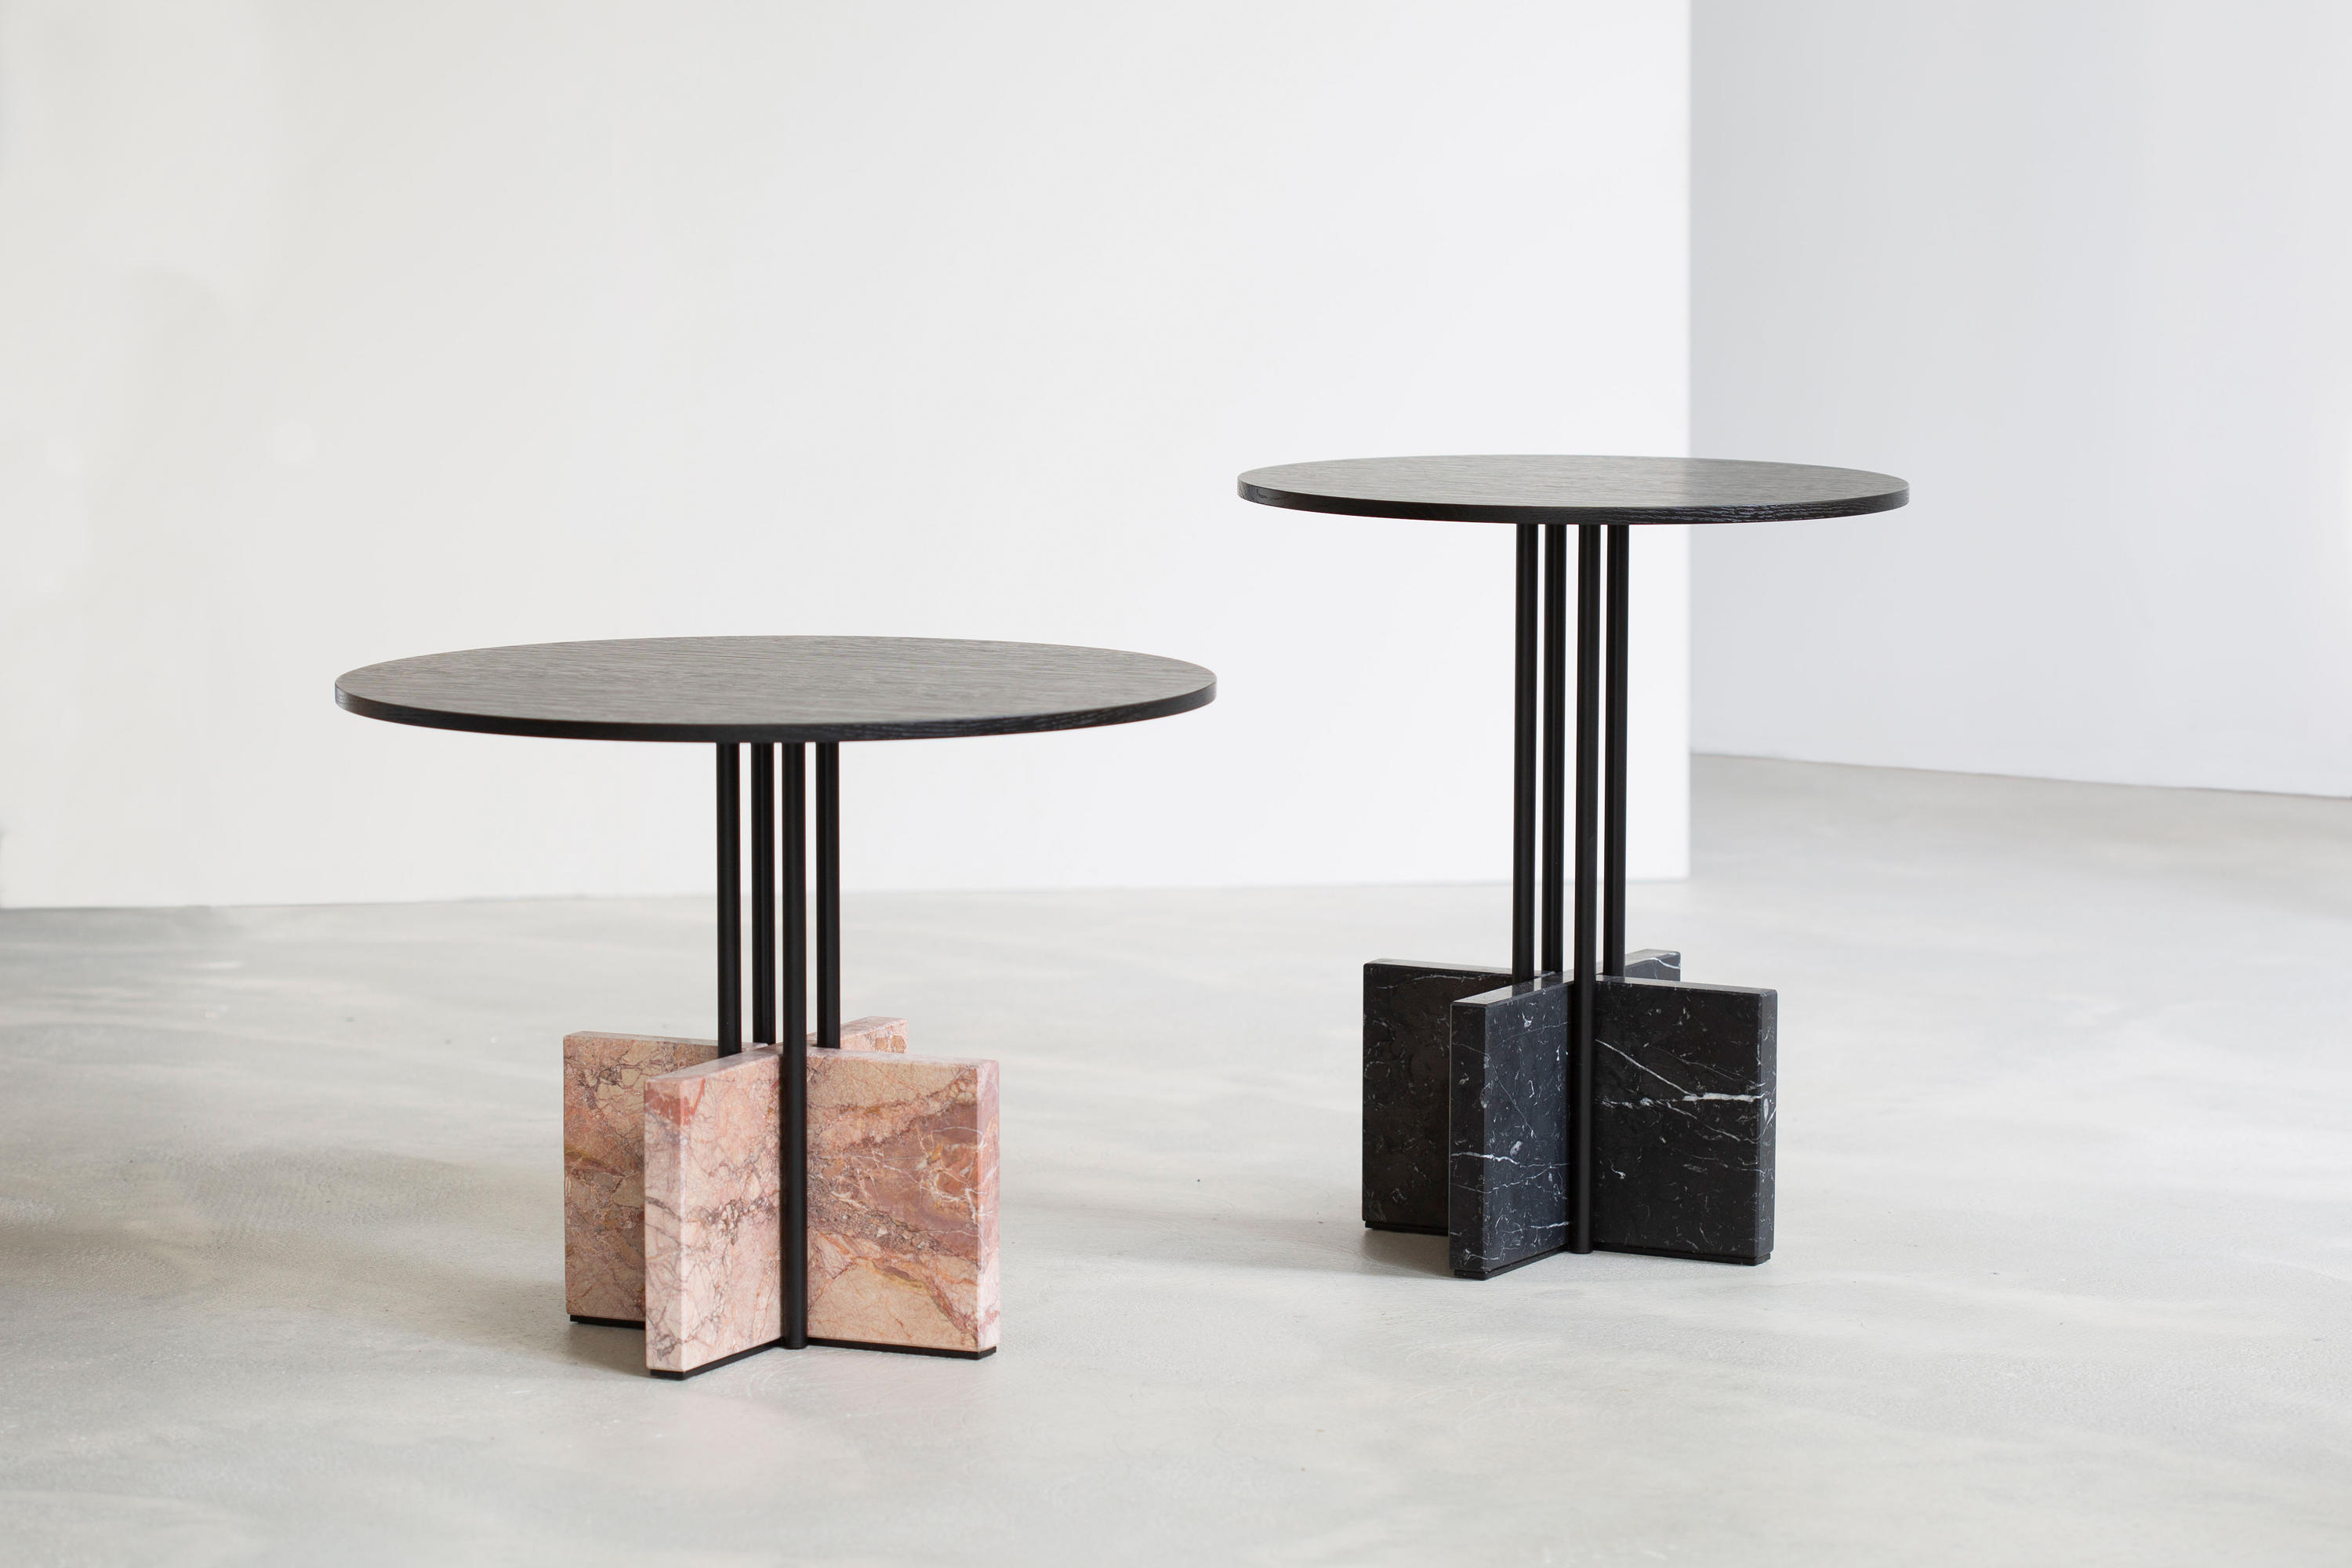 GRAVITY Table by Hanne Willmann for Favius